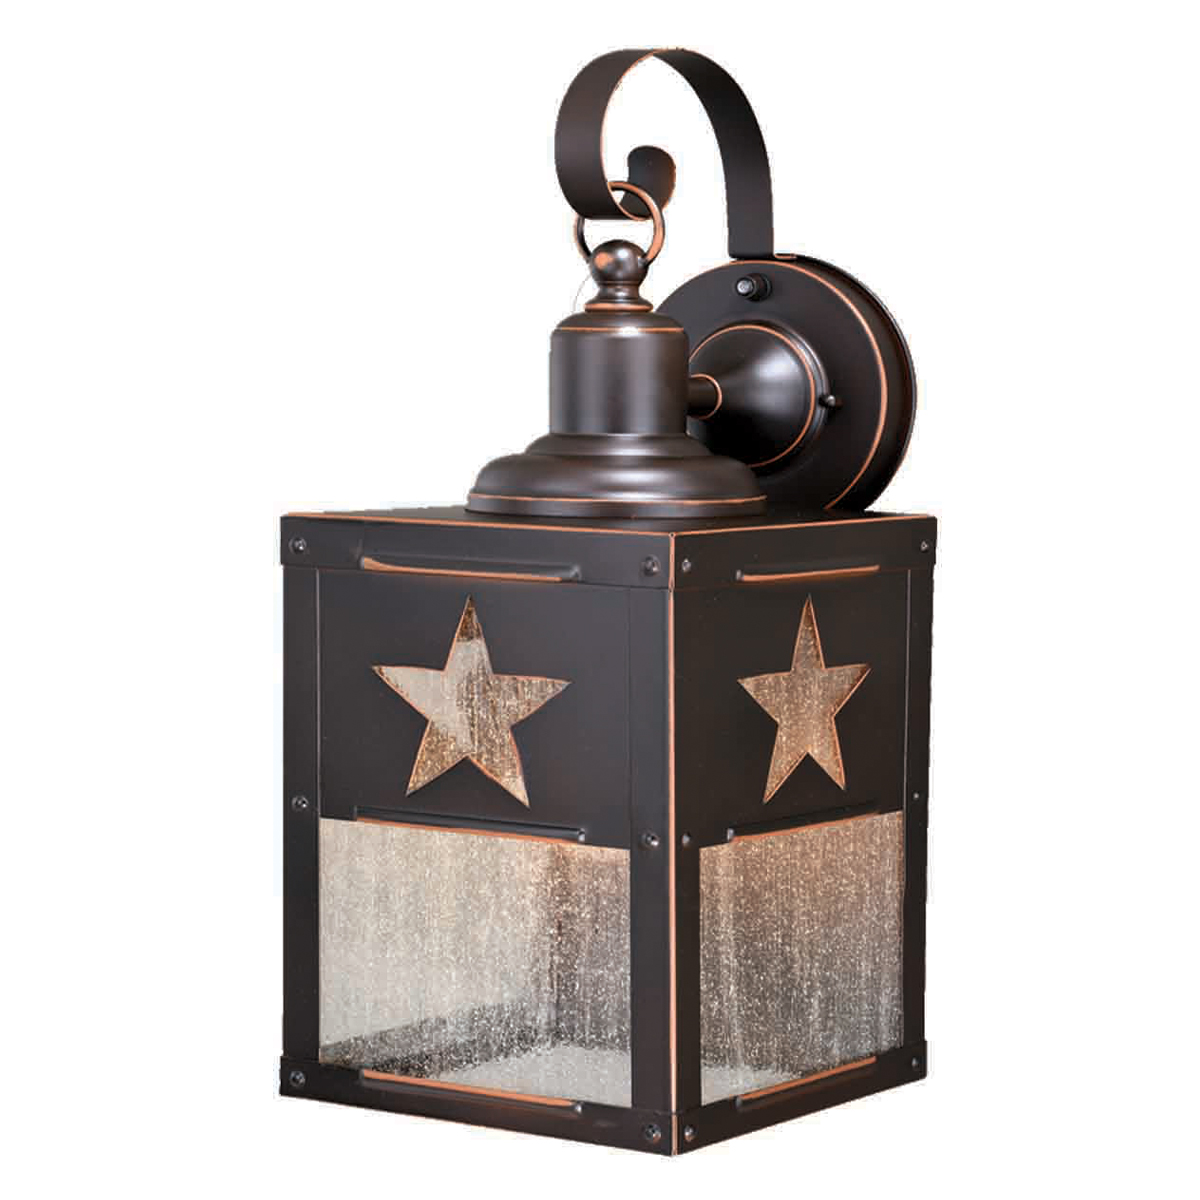 Lone Star Wall Sconce - Large